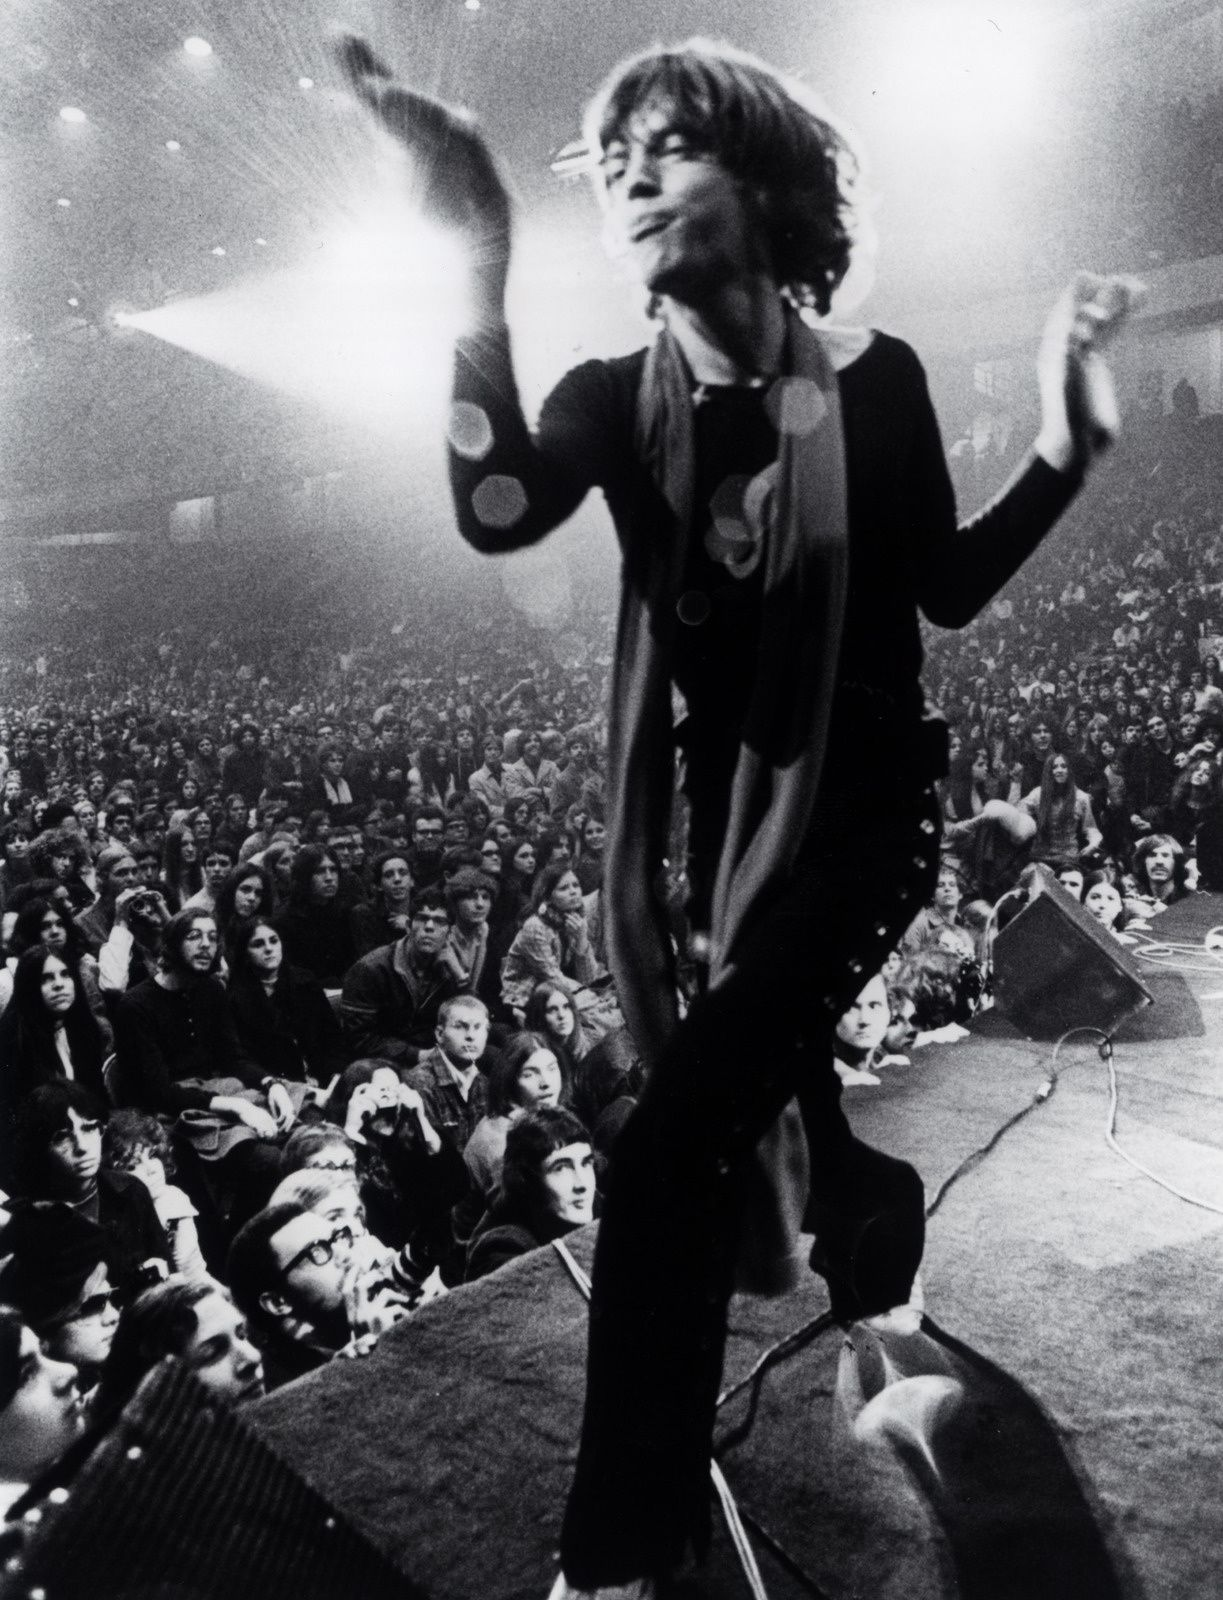 "Altamont Speedway Free Festival, the free concert headlined by the Rolling Stones on December 6, 1969 that ended with the fatal stabbing of an 18-year-old black man named Meredith Hunter   by a member of the Hells Angels - from the film ""GIMME SHELTER."" Courtesy of the Criterion Collection"